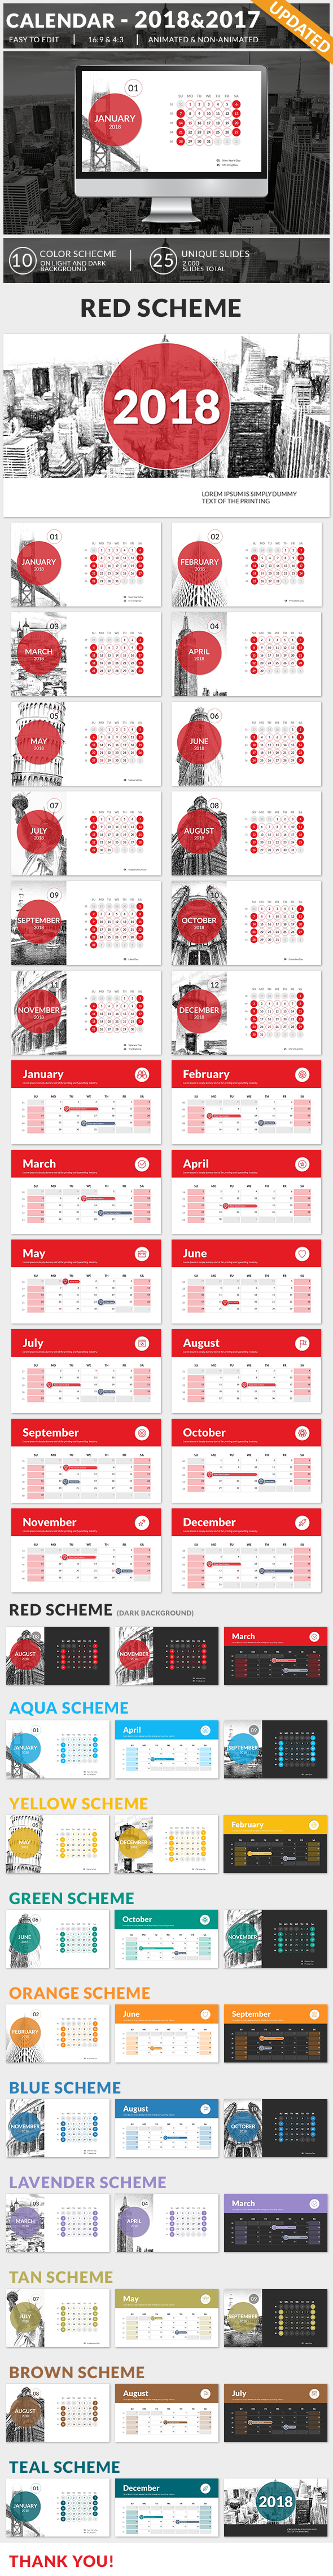 Calendar 2018 and 2017 powerpoint presentation template by sananik calendar 2018 and 2017 powerpoint presentation template business powerpoint templates toneelgroepblik